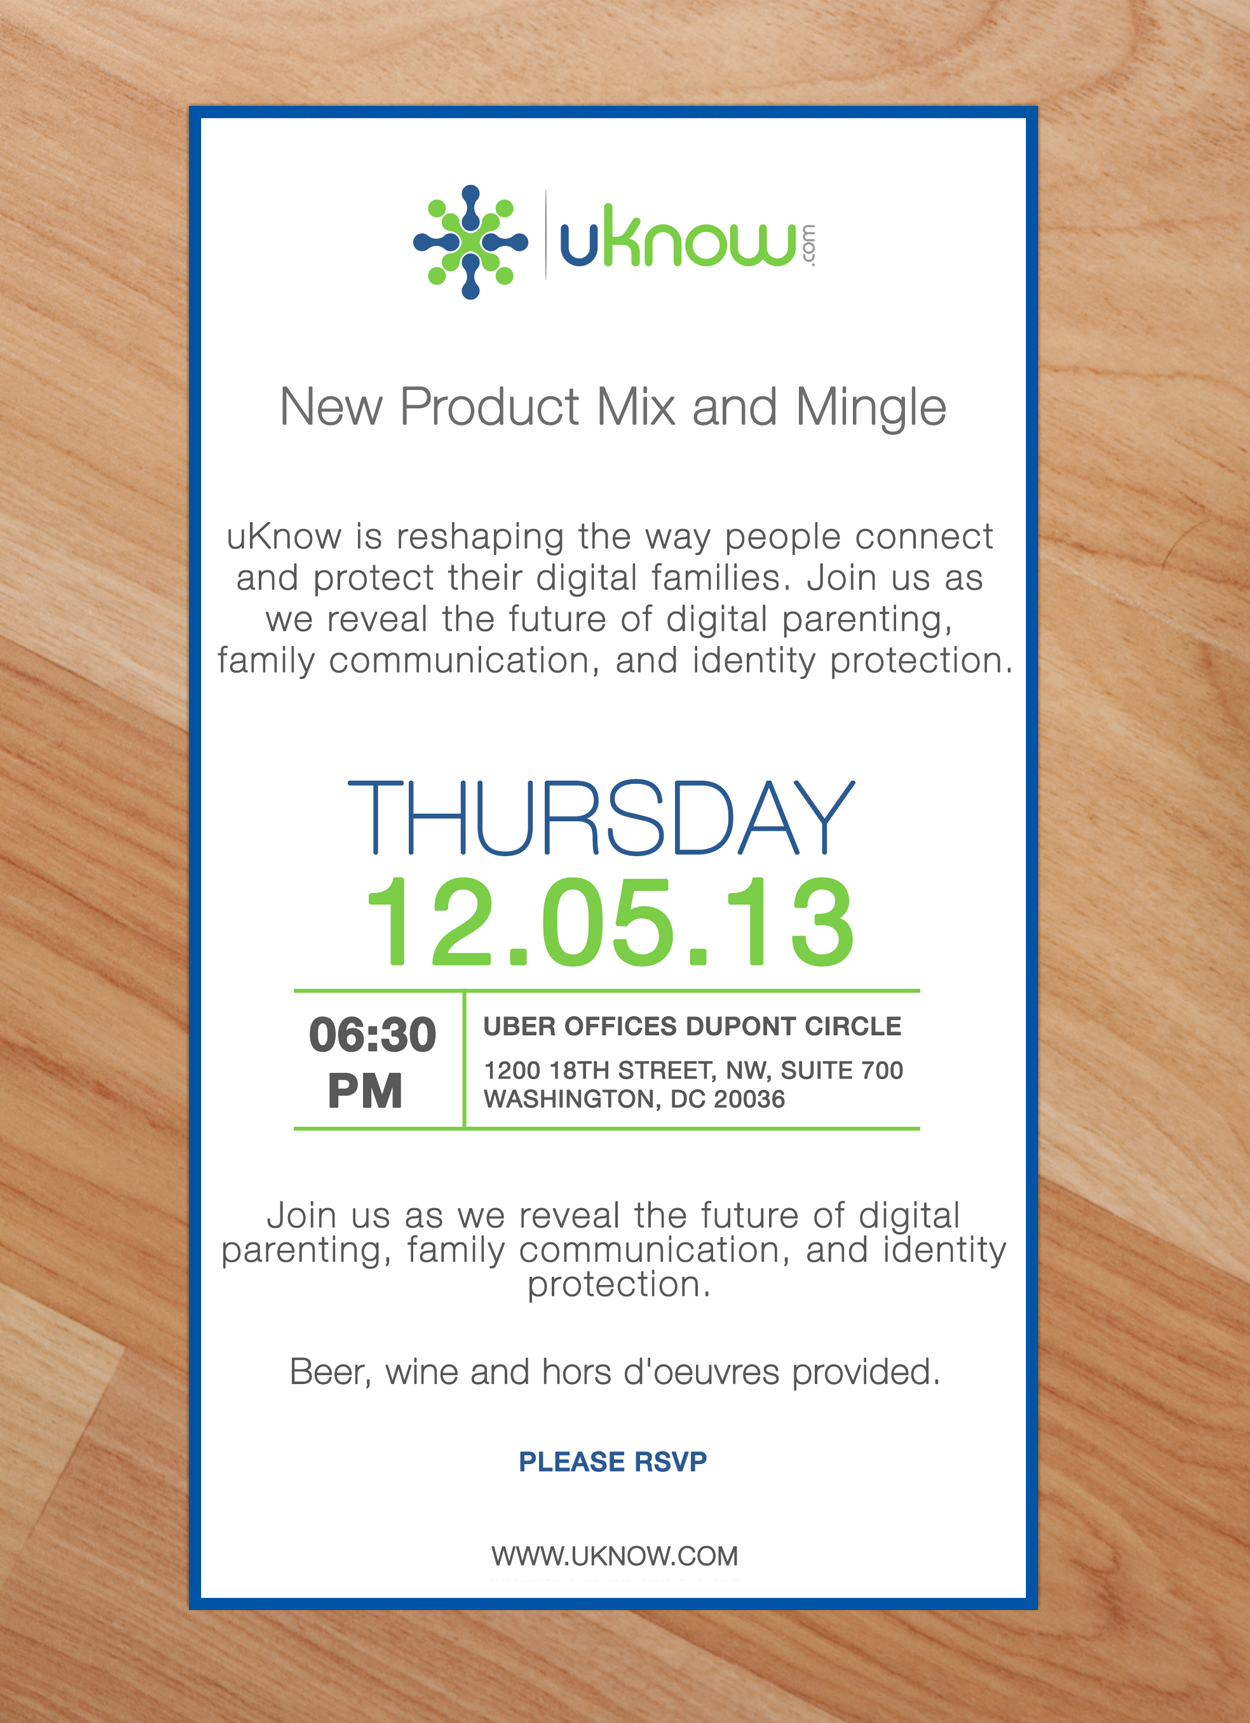 You are invited to uknows new product mix and mingle event stopboris Image collections